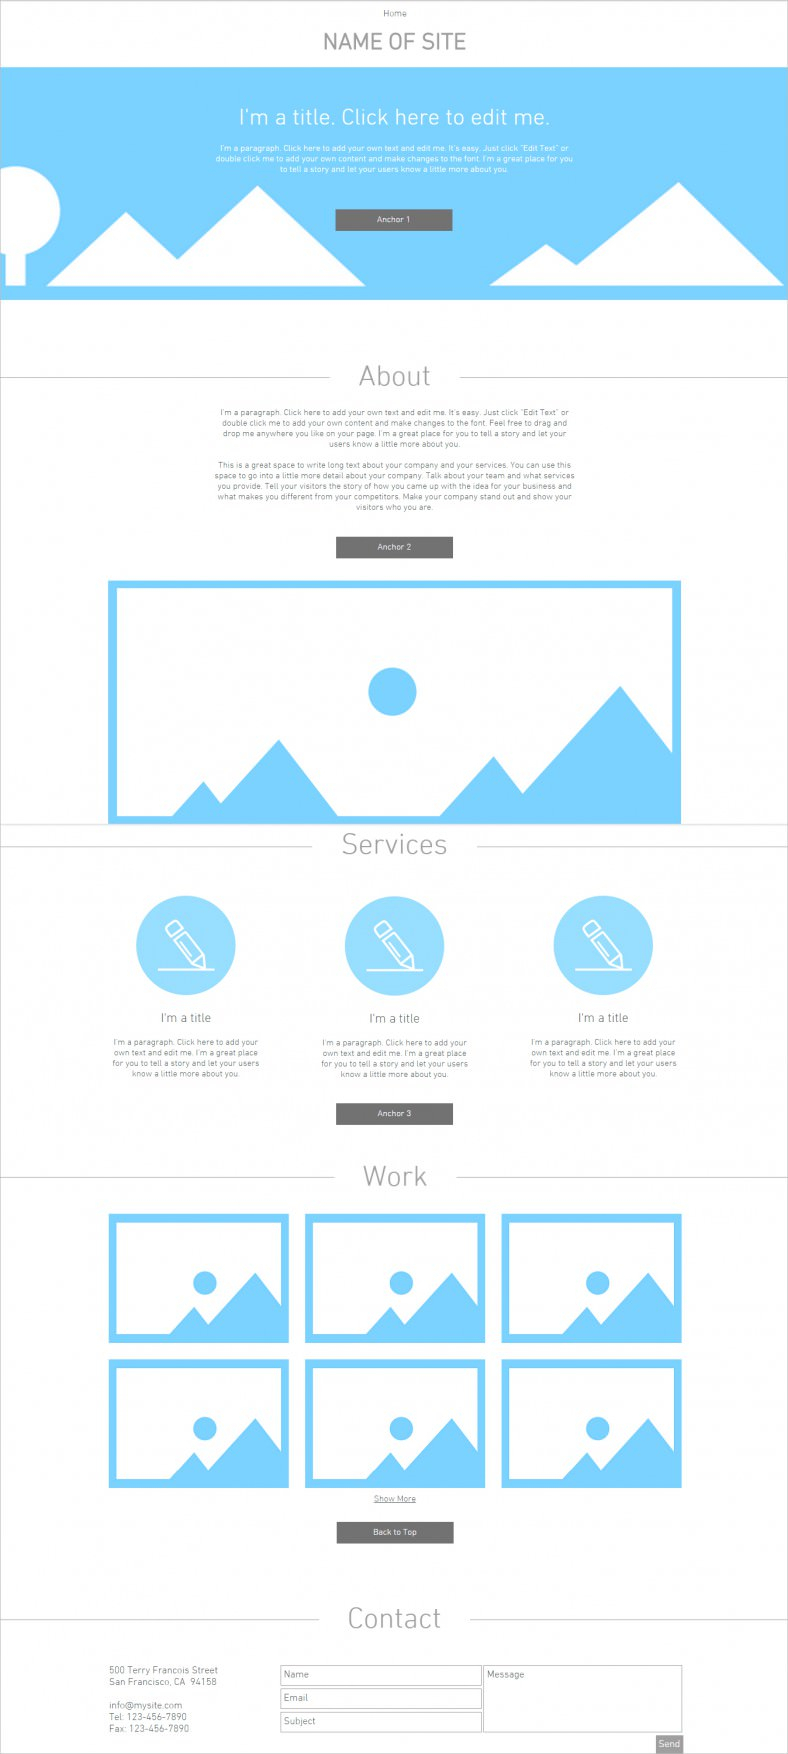 Blank Html5 Website Templates & Themes | Free & Premium With Regard To Html5 Blank Page Template